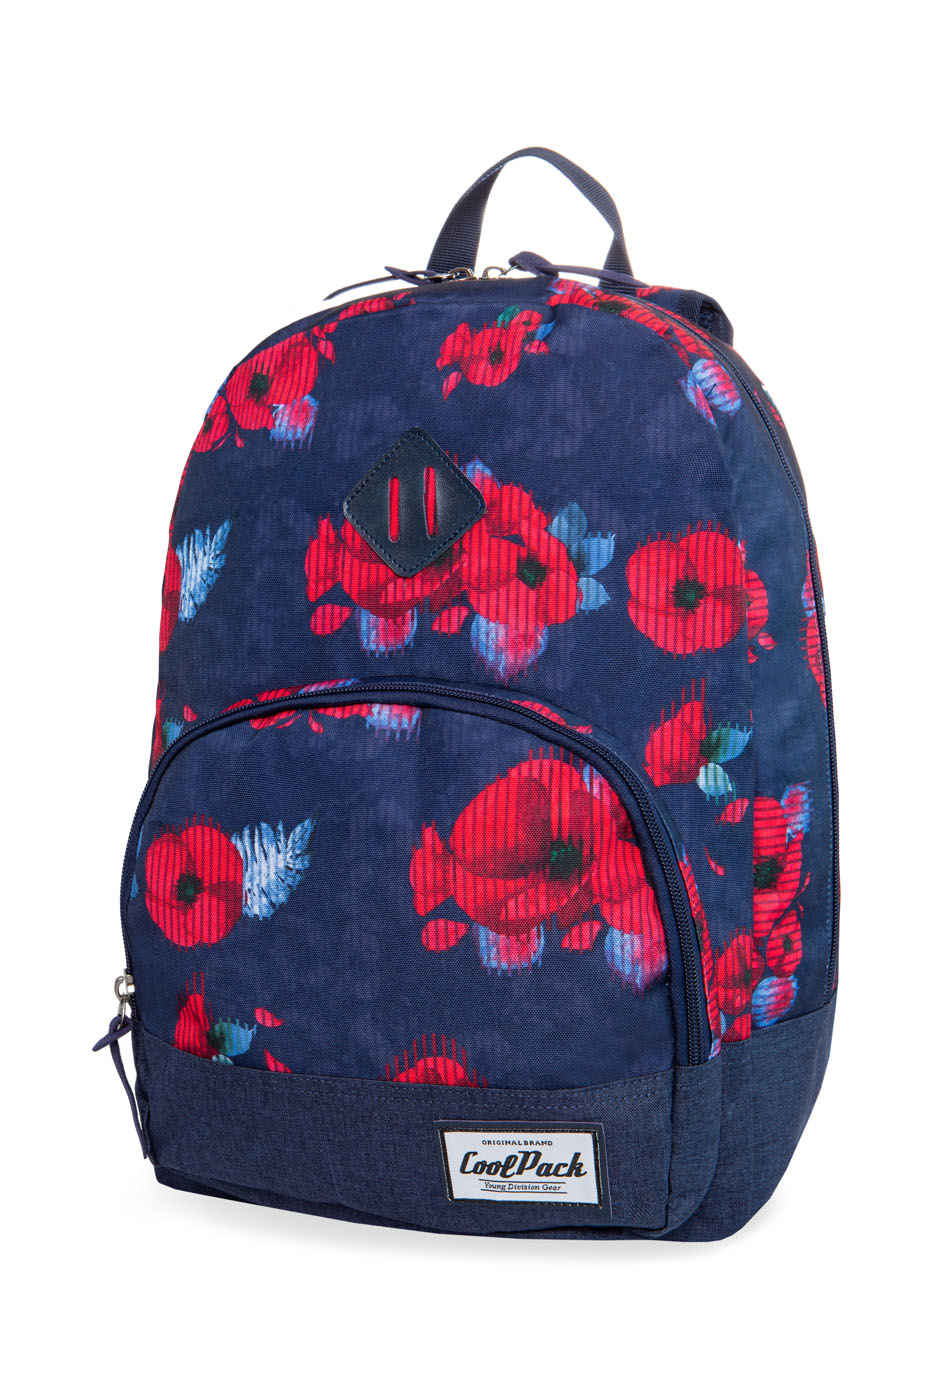 Coolpack - classic - youth backpack - red poppy